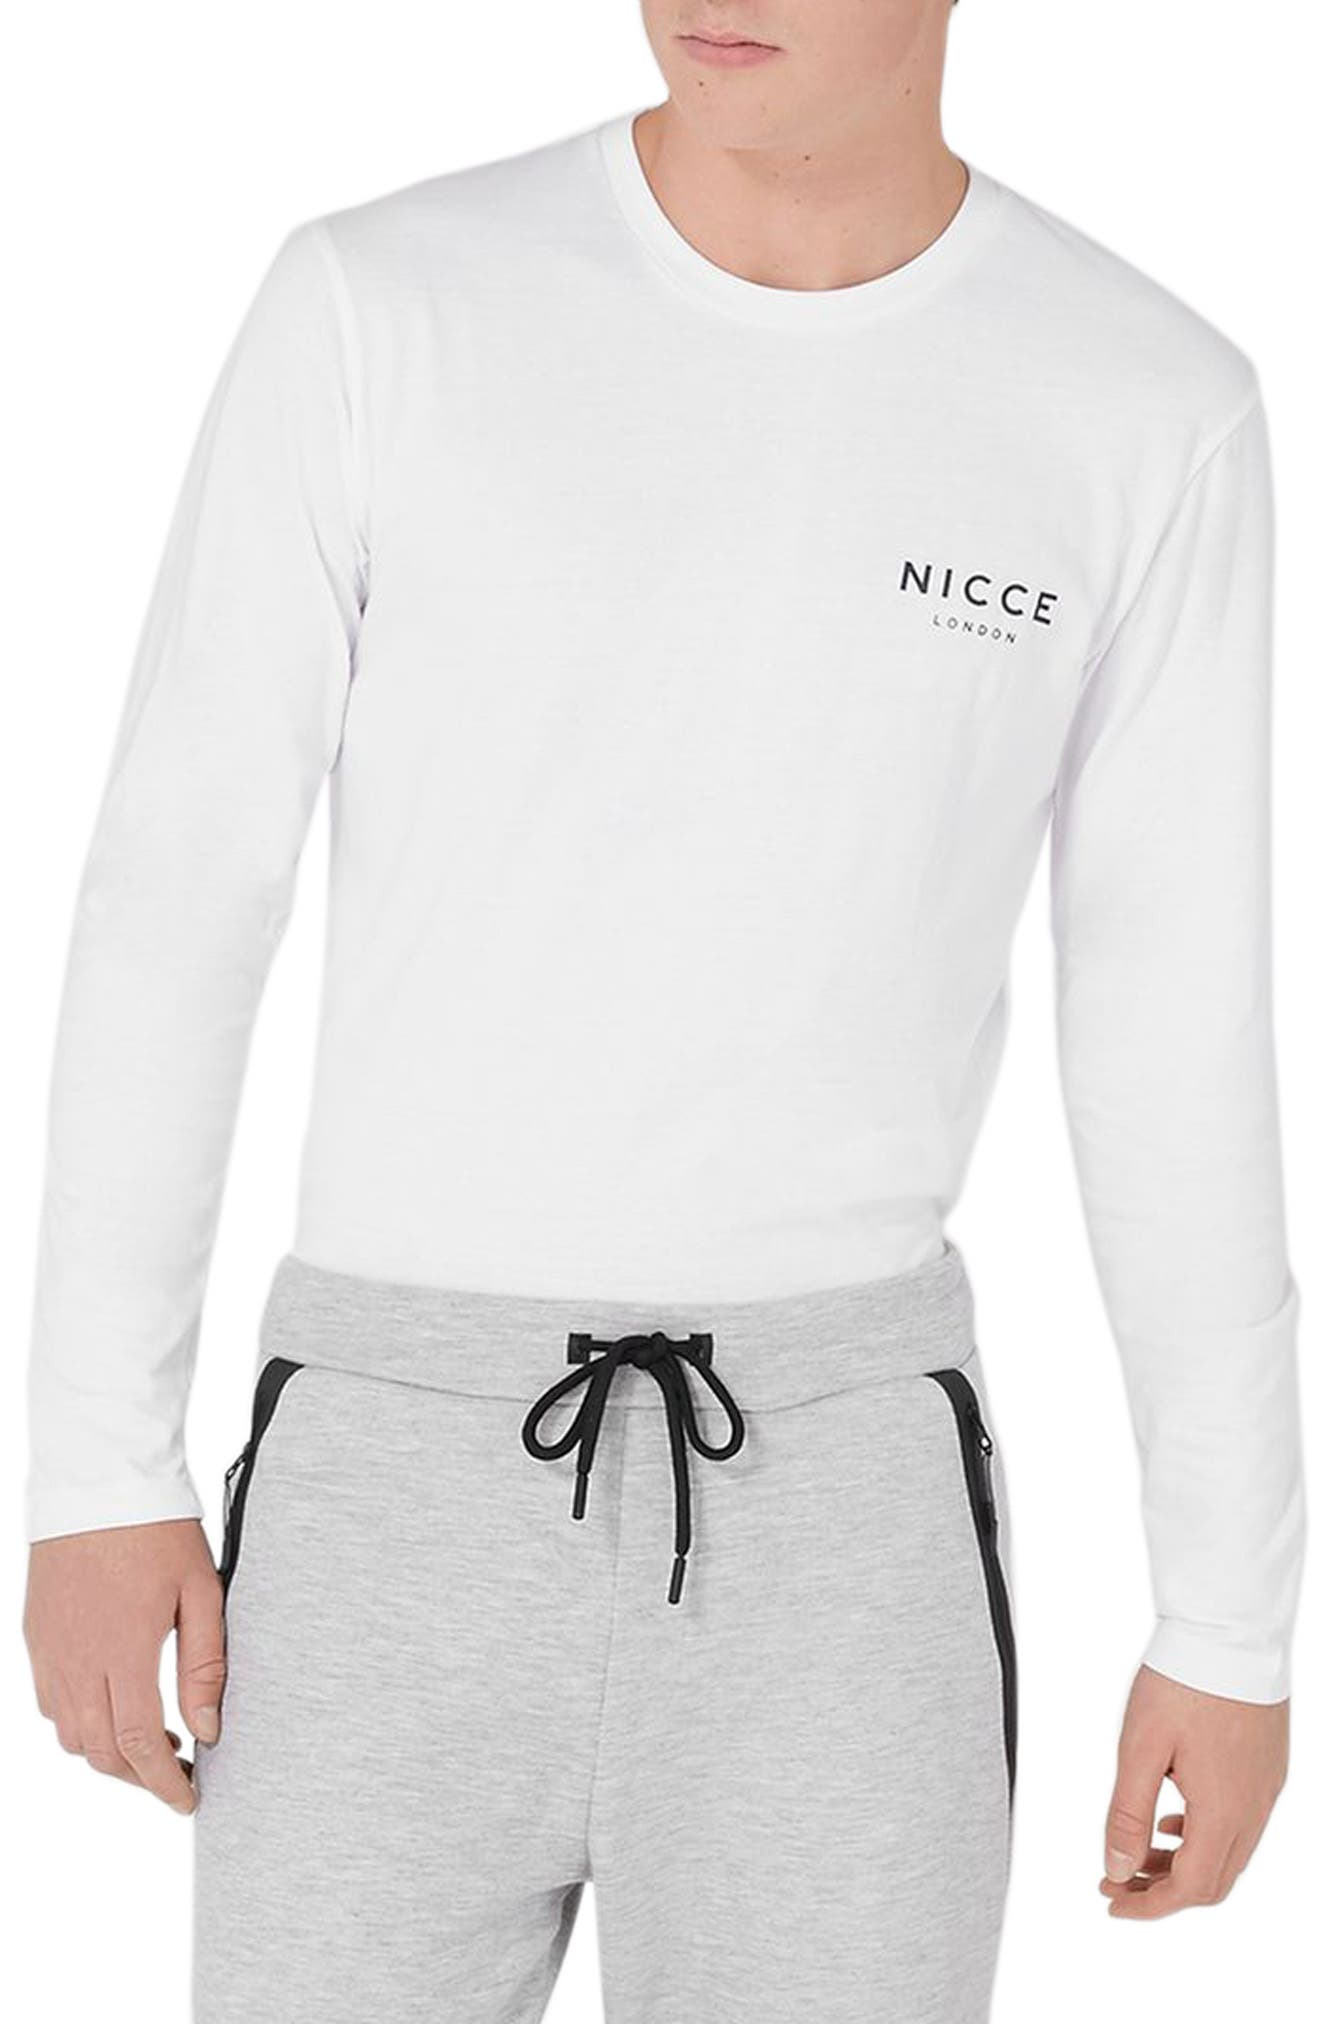 Alternate Image 1 Selected - Topman NICCE Graphic Long Sleeve T-Shirt